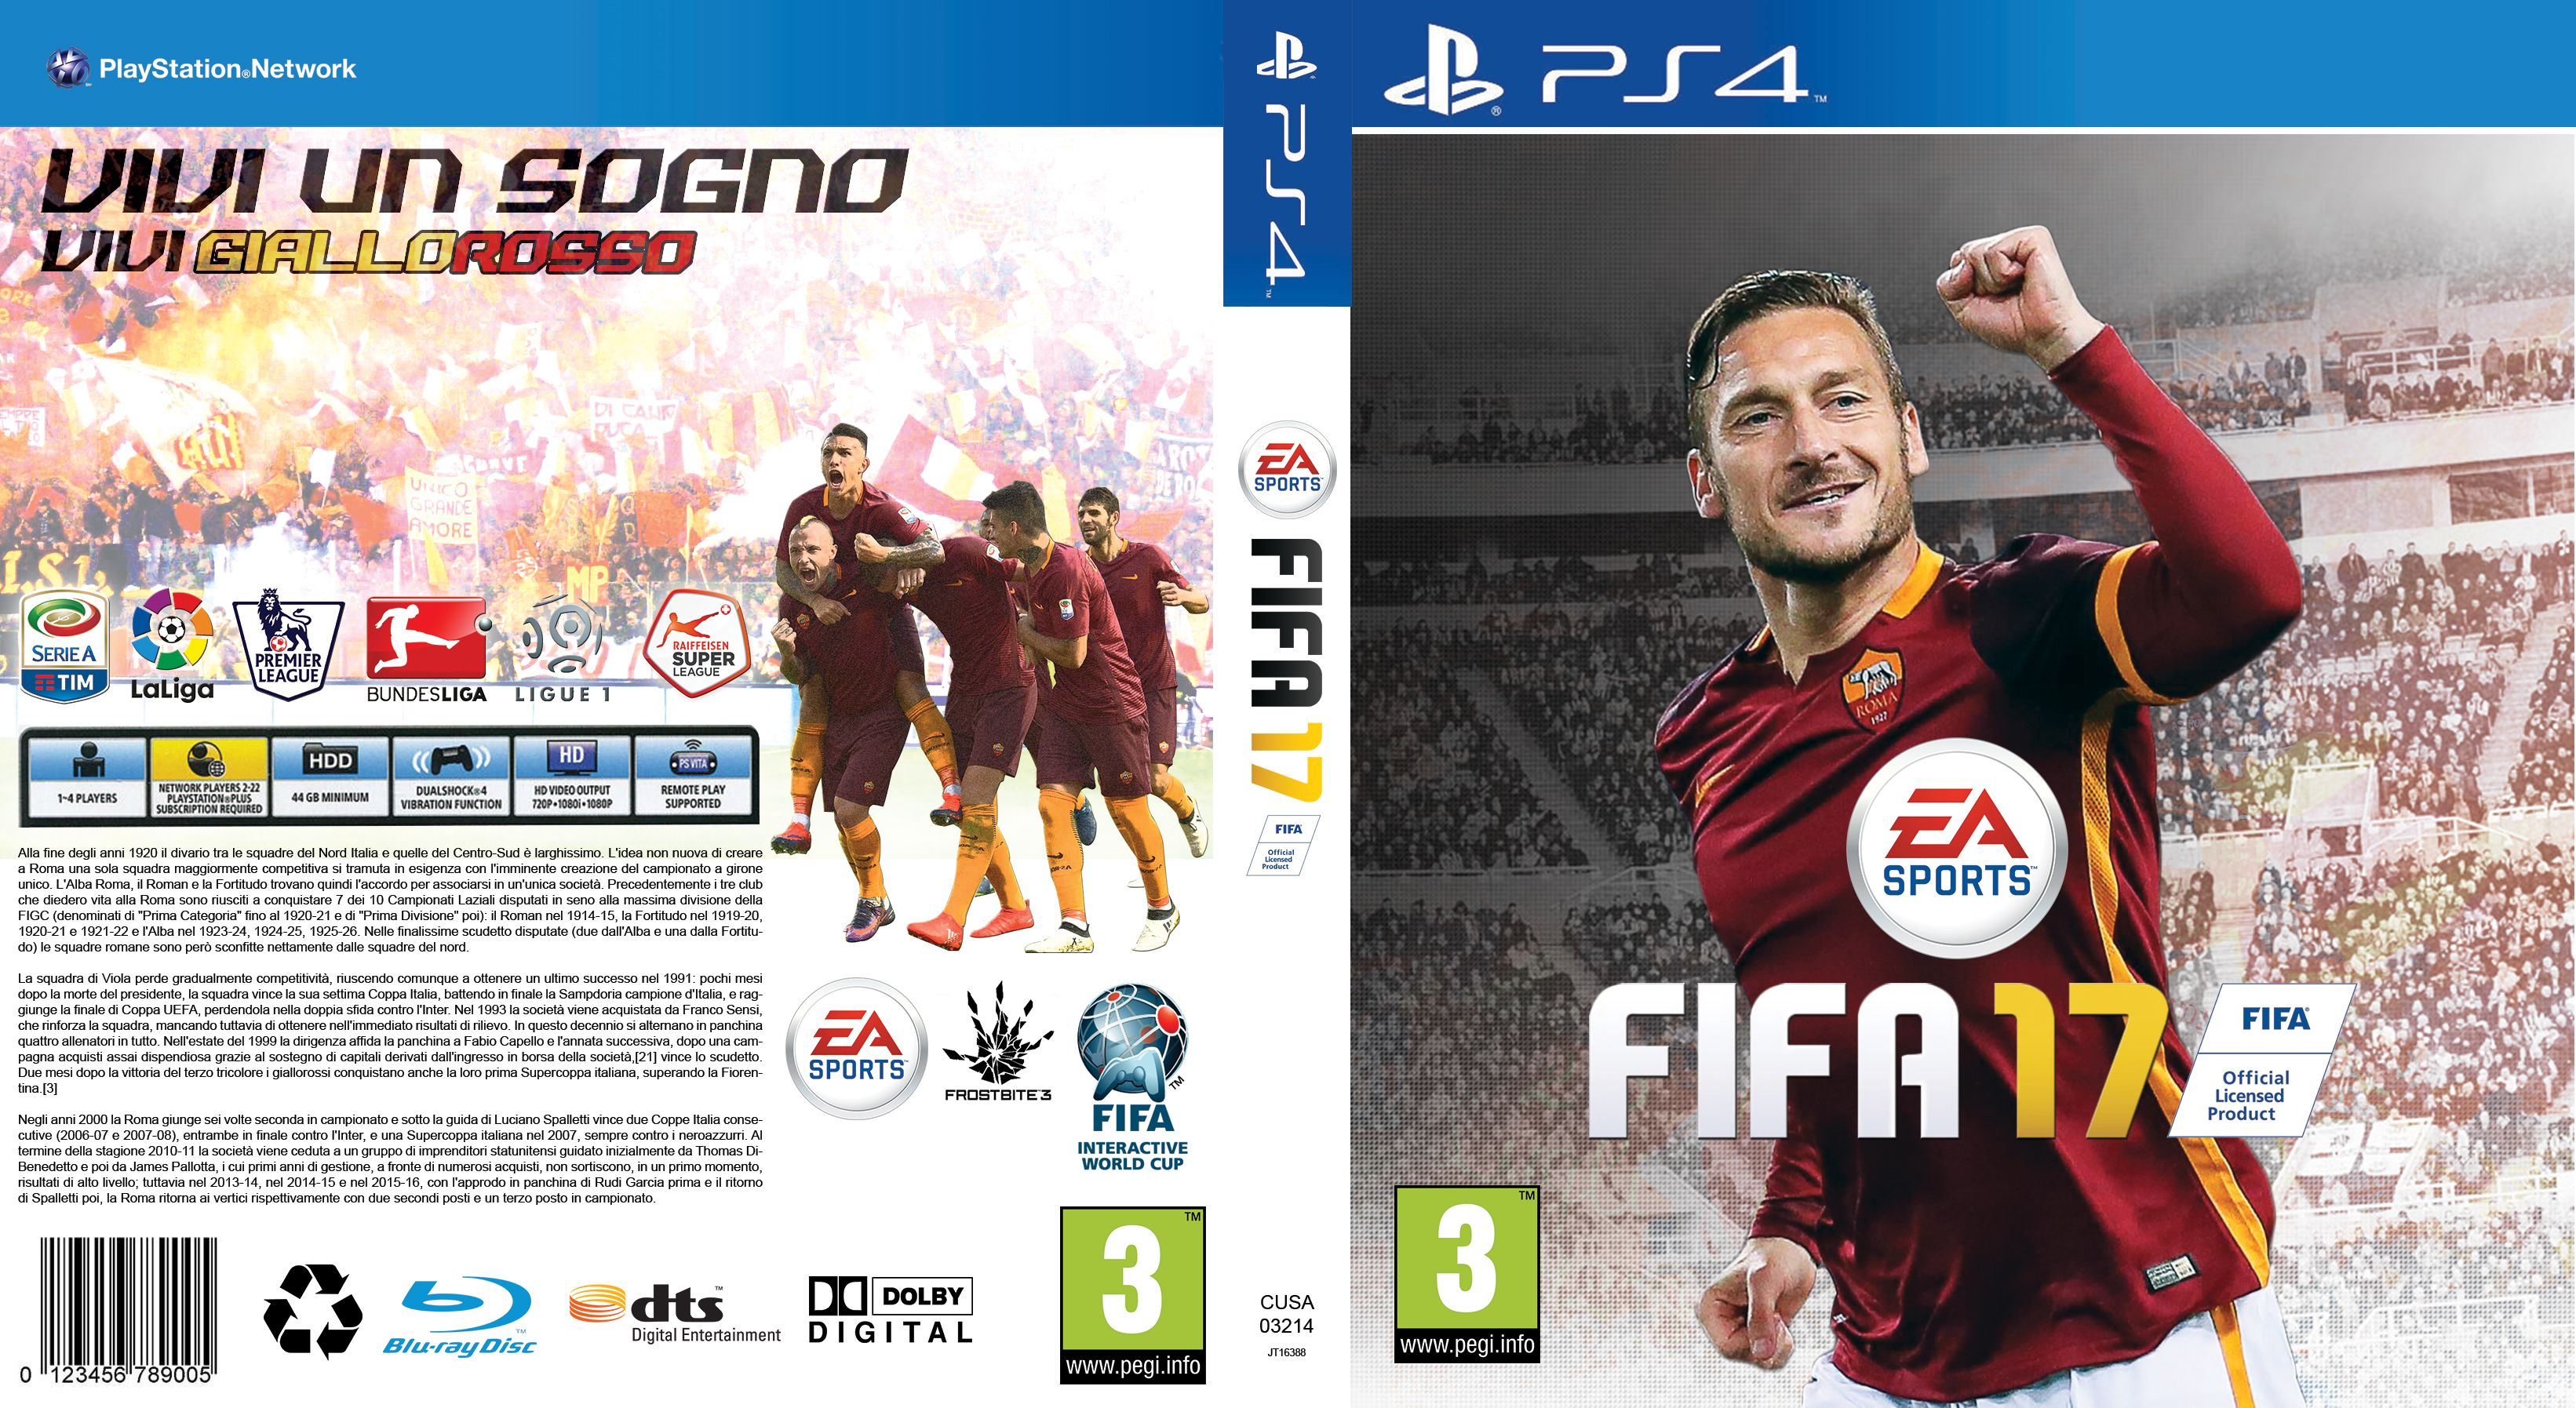 Promo Microsoft Cant Explain Why Its 4k Is 100 Better Than Sonys The Nicholas Keith Ralph 36mm Date Nk8003 Portada Y Controportada Juego Playstation 4 Fifa 17 En Tema Roma